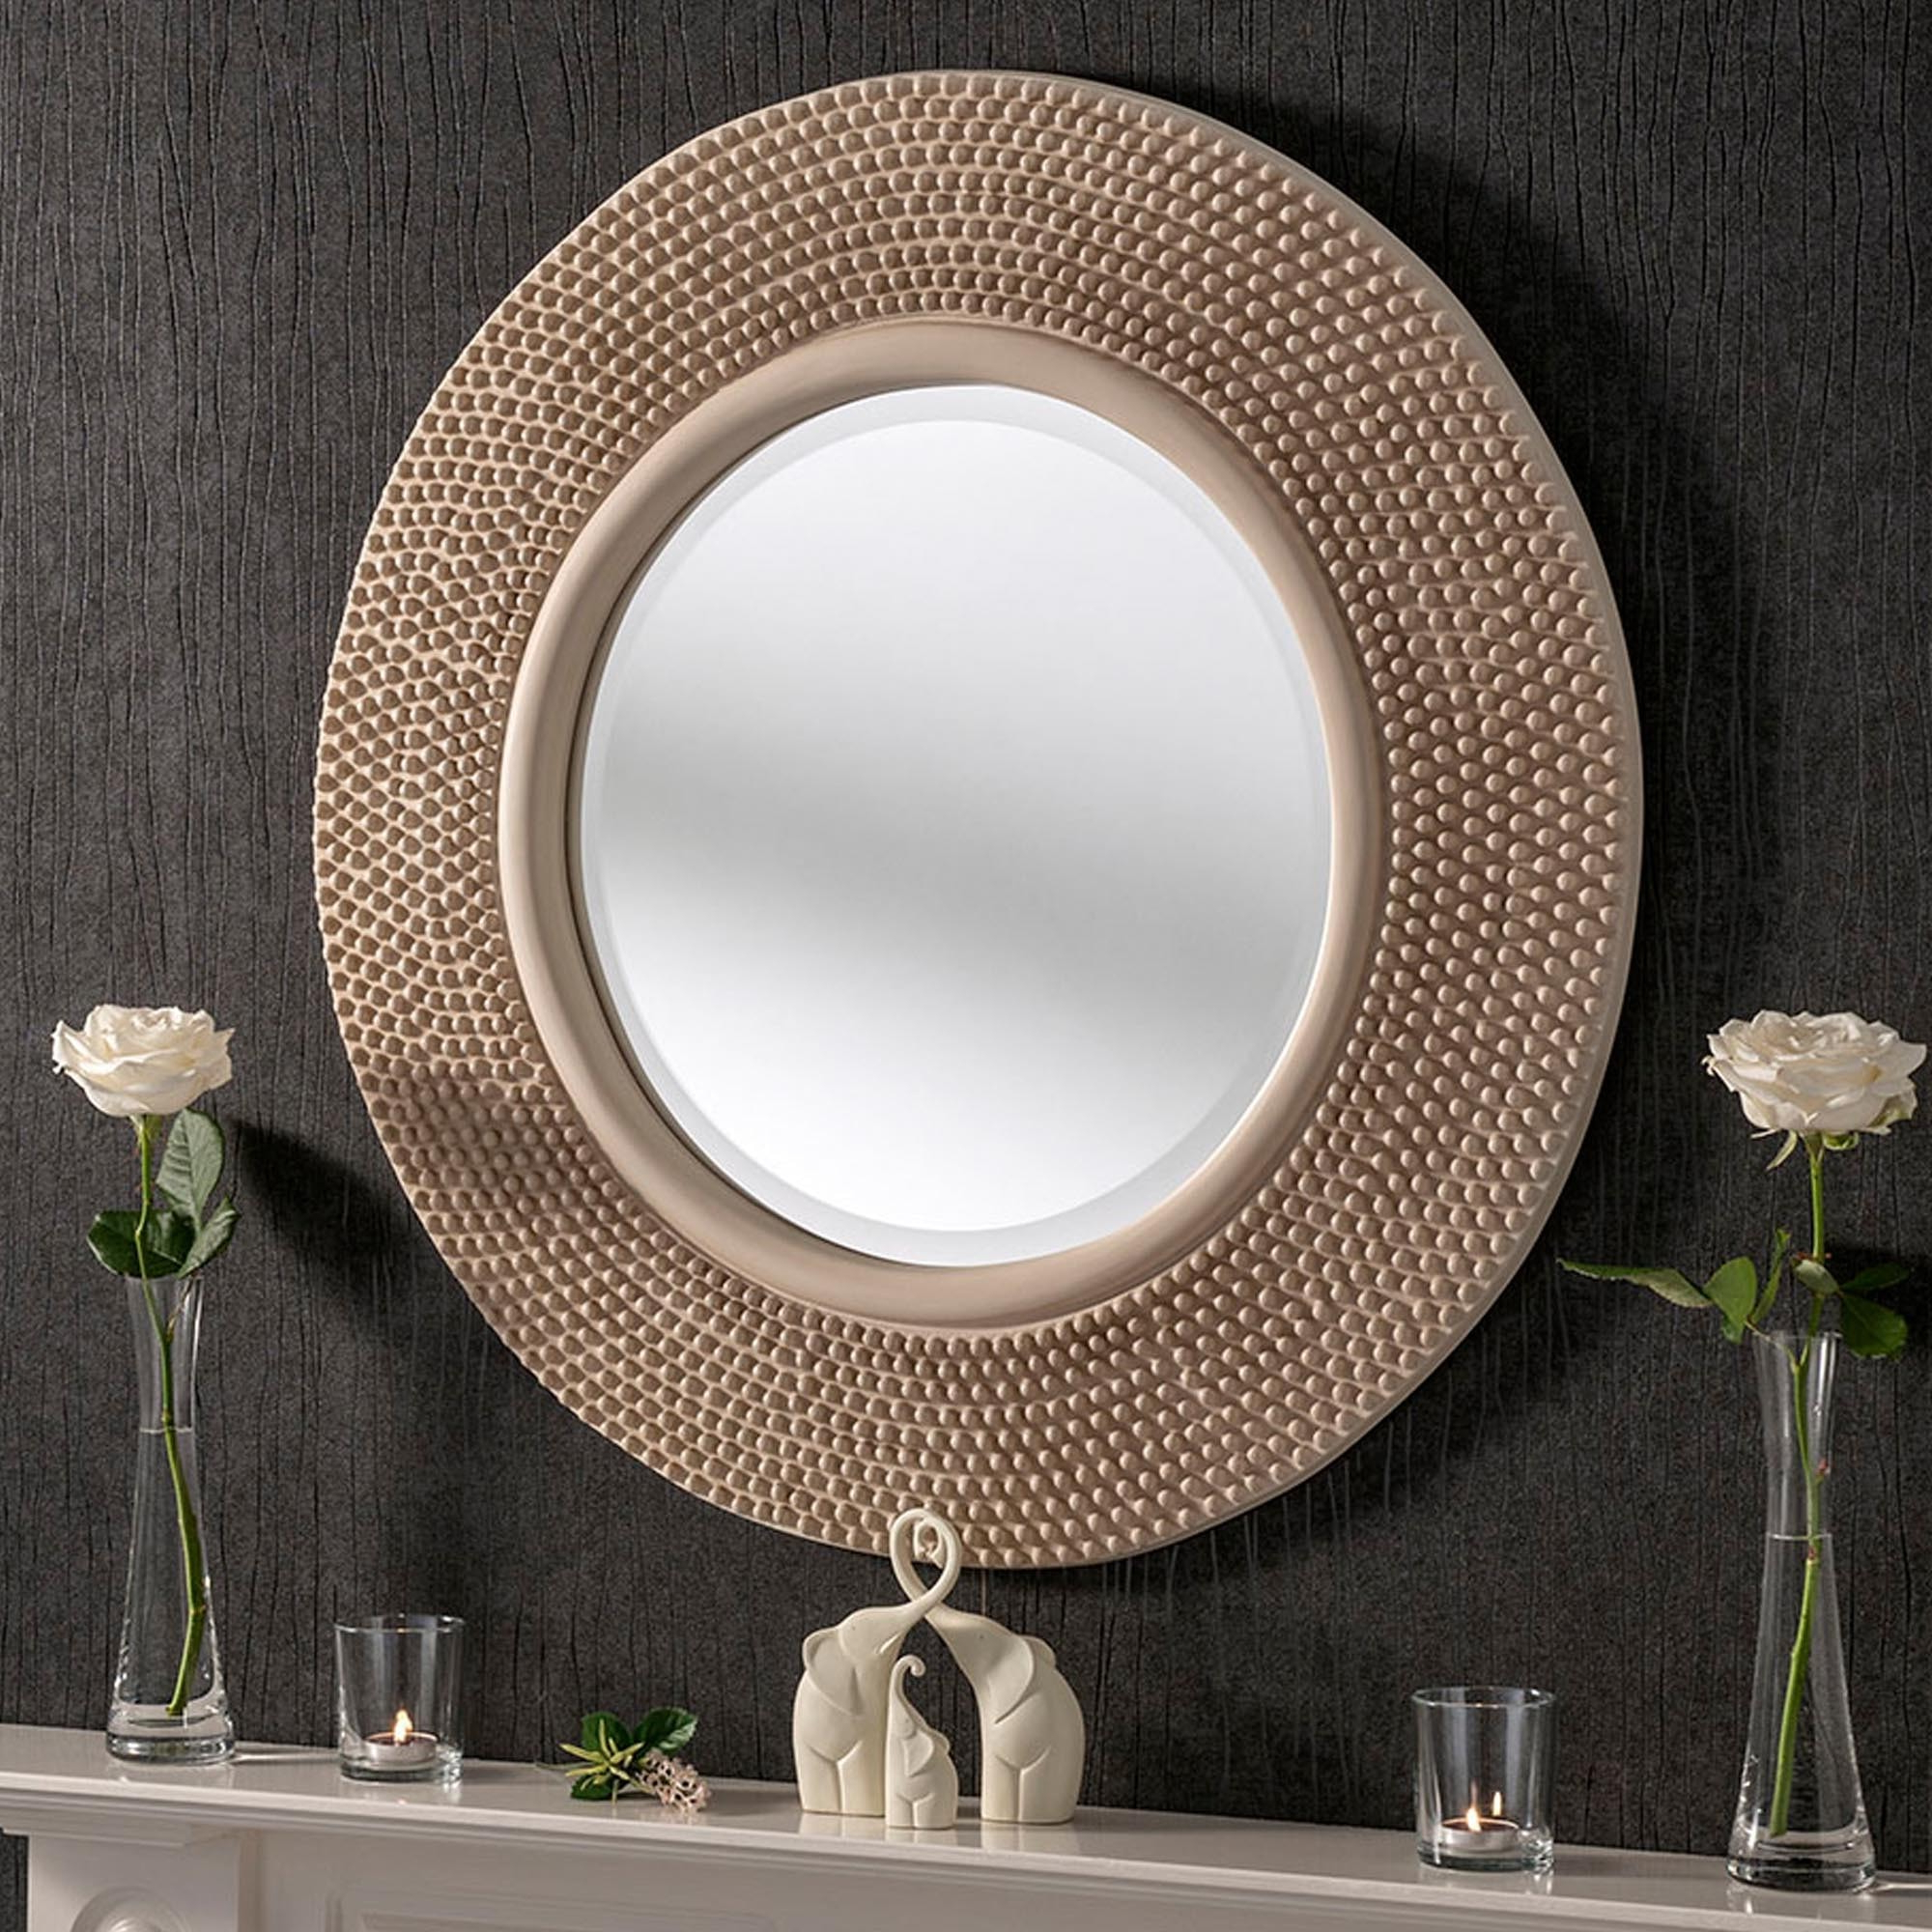 Studded Wall Mirrors Intended For Most Recently Released Circular Contemporary Ivory Studded Wall Mirror (View 13 of 20)